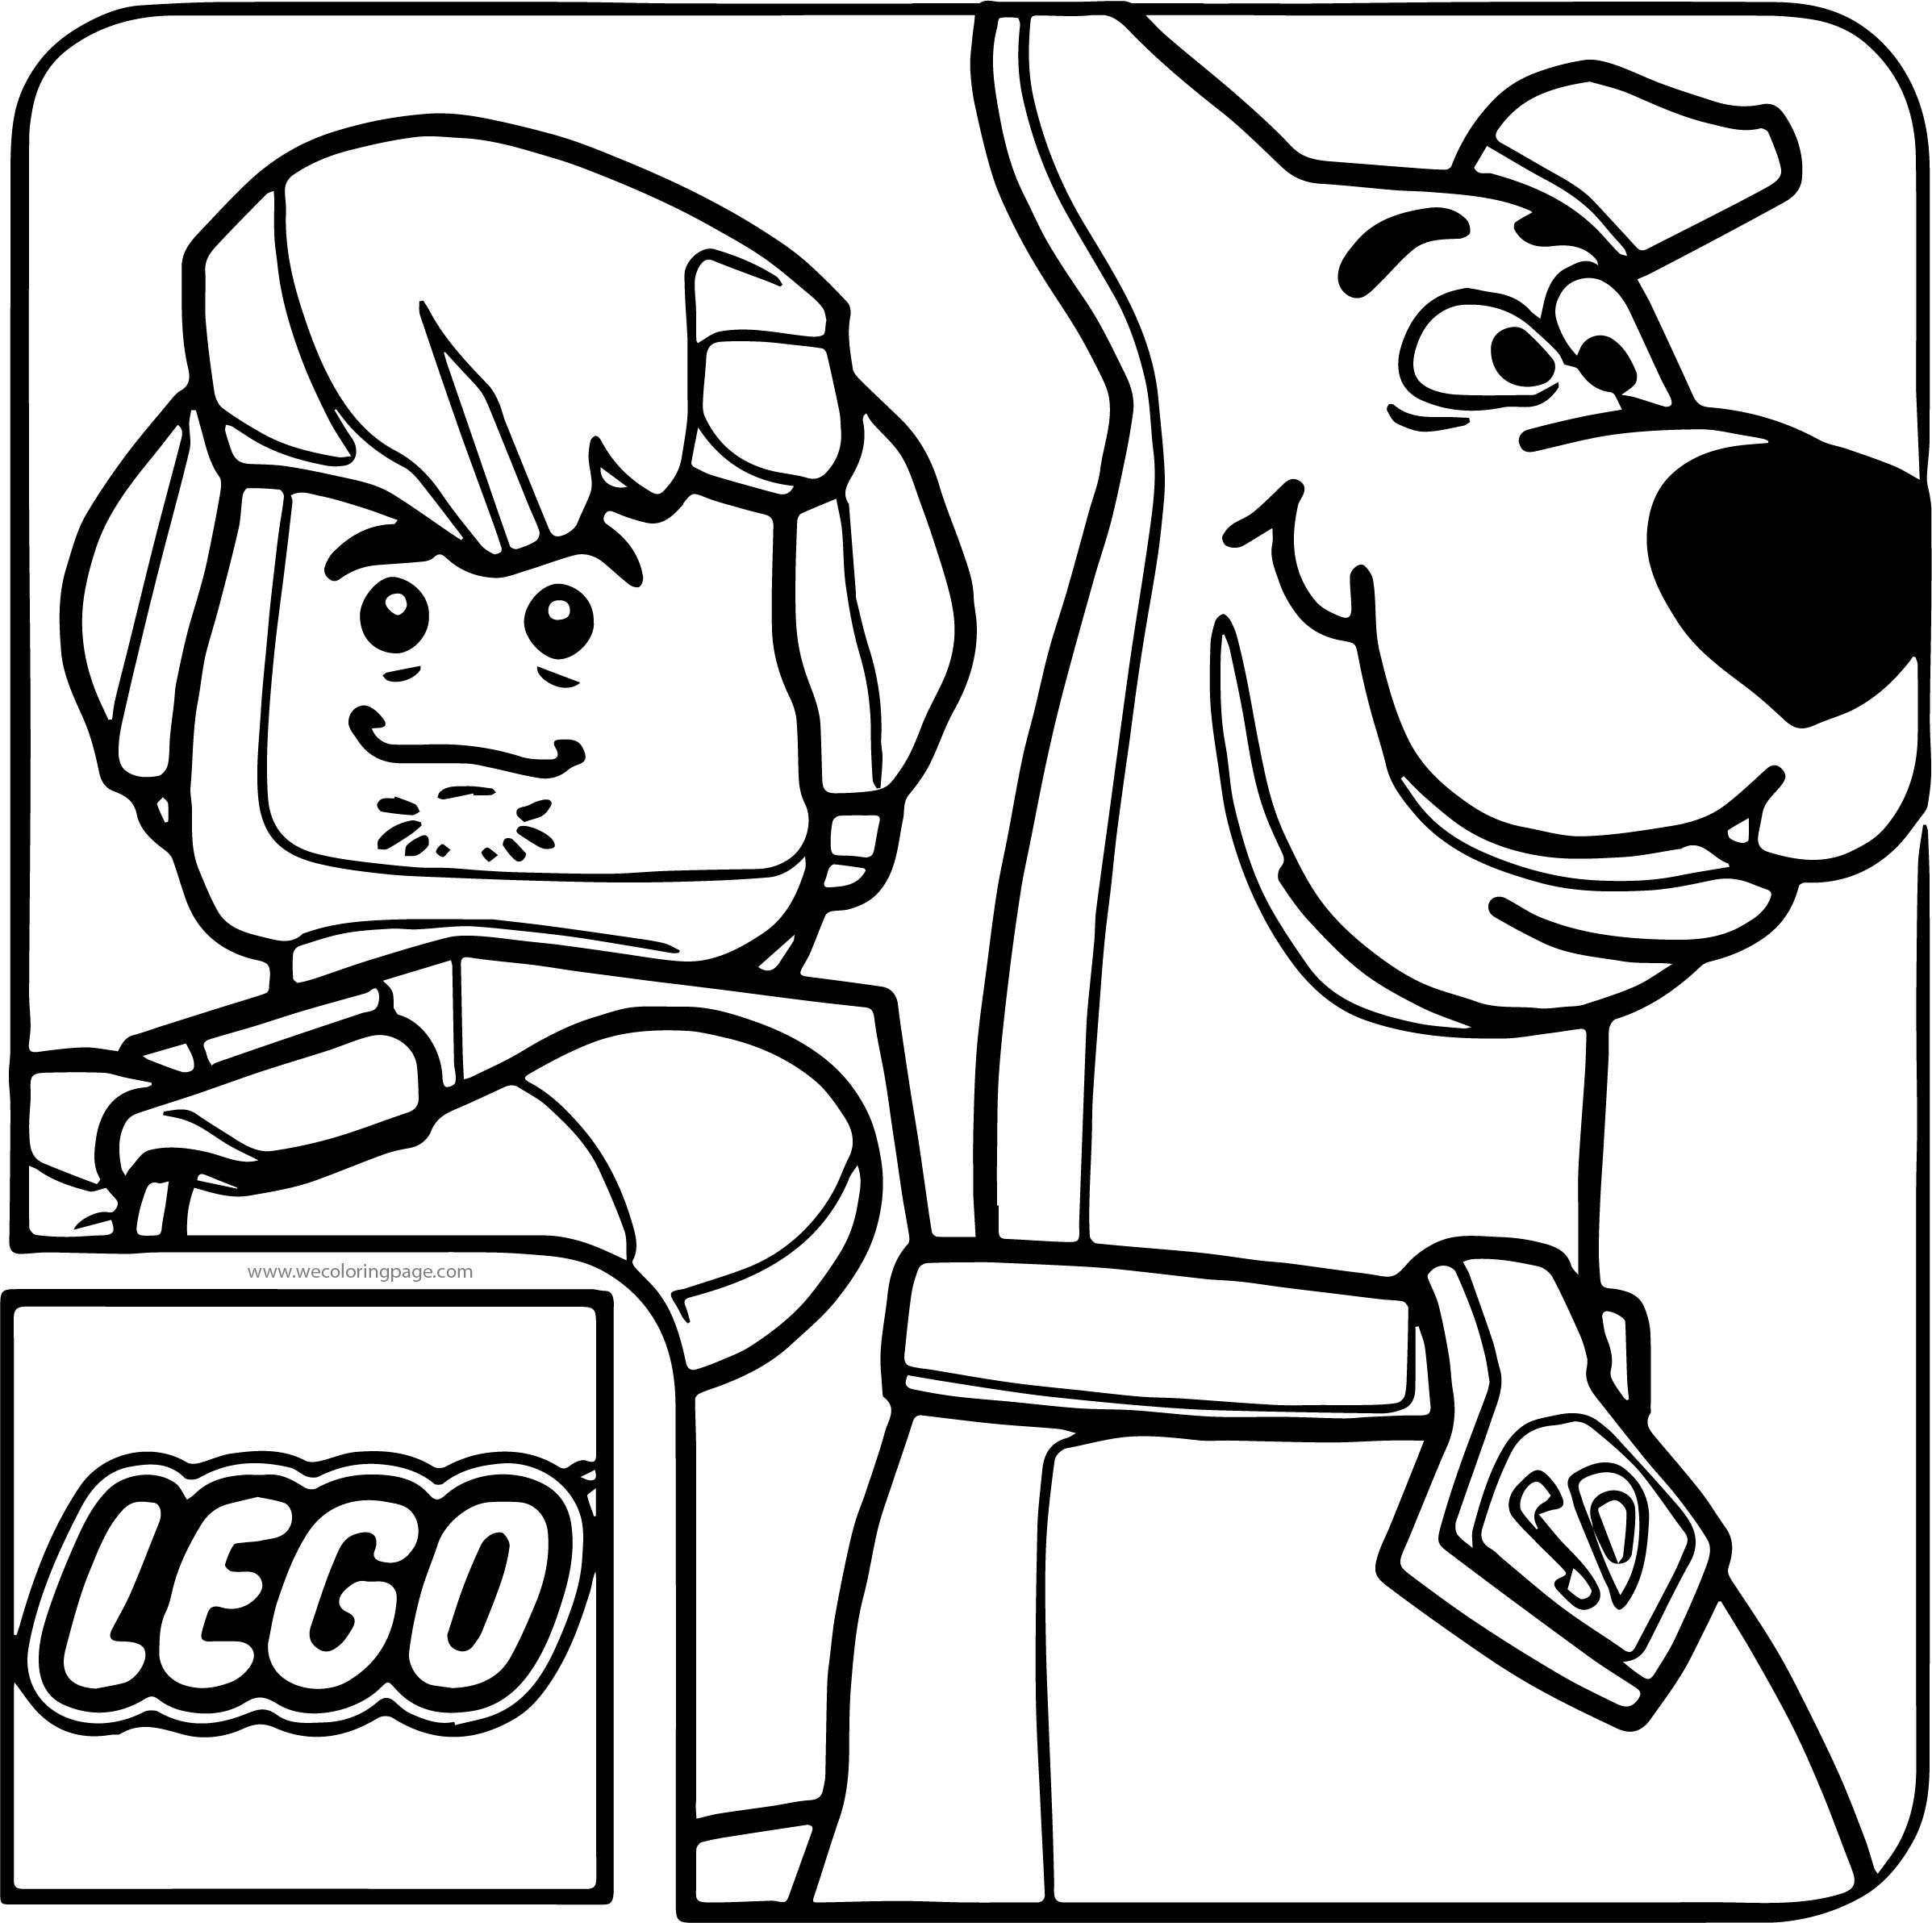 Lego Scooby Doo Haunted Coloring Page | Wecoloringpage.com